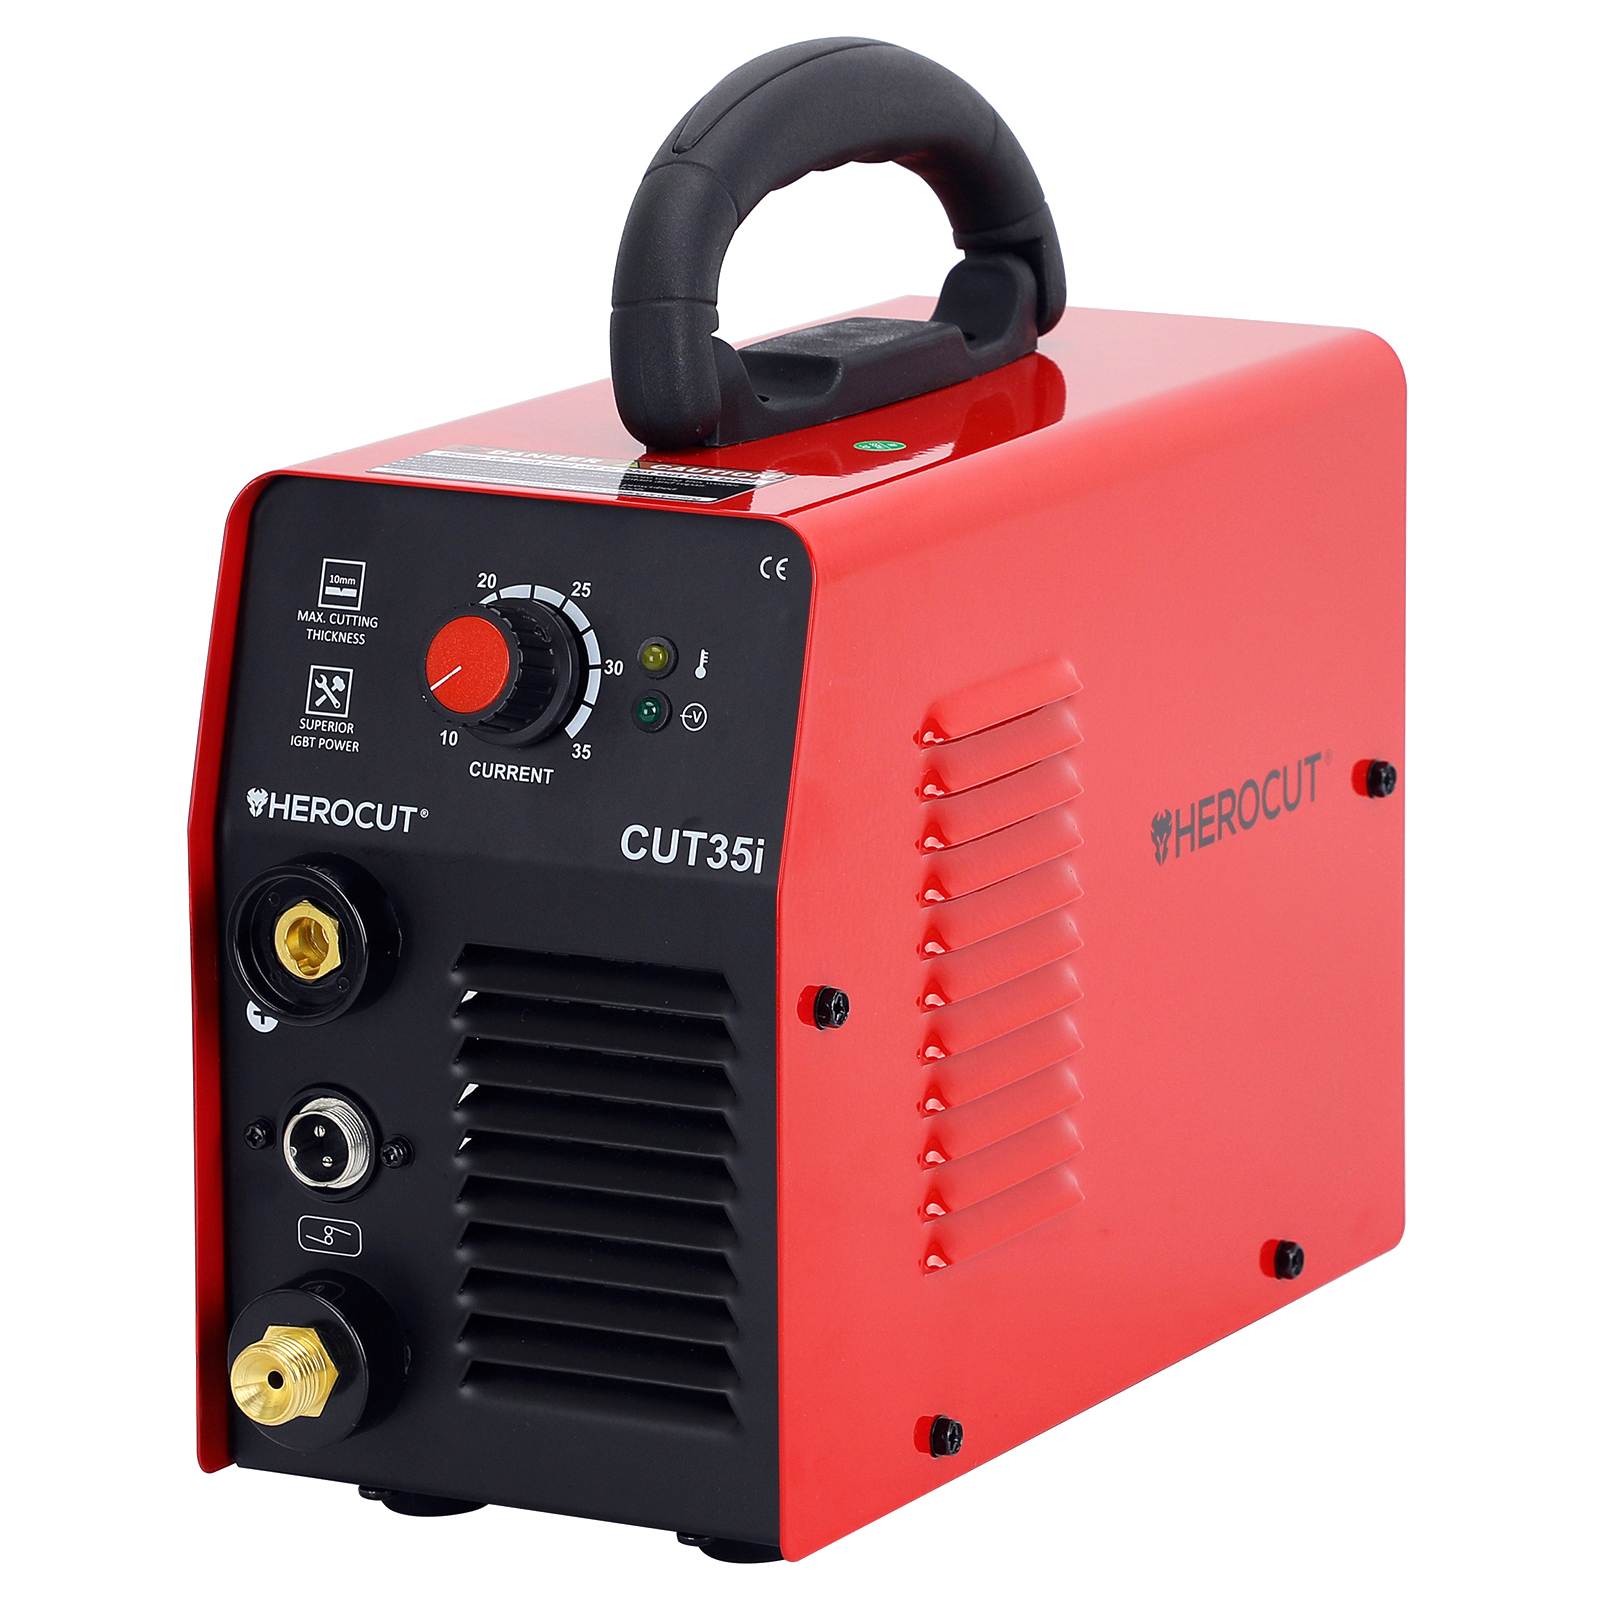 HeroCut Cut35i 220V Plasma Cutter Great To Cut Stainless Steel 6mm Clean Cut Air Plasma Cutting Machine